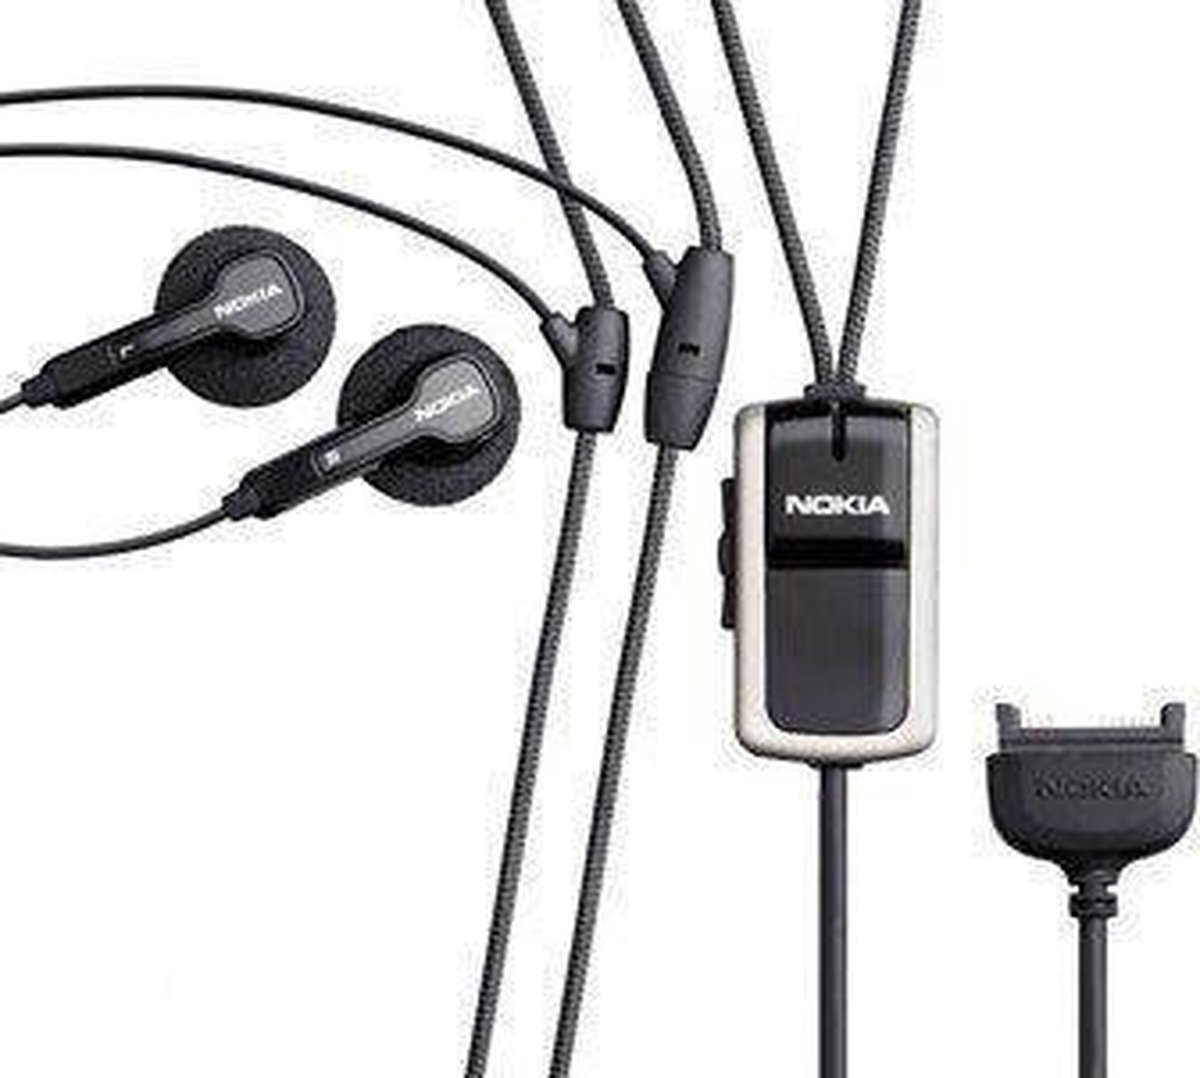 Nokia Stereo Headset HS-23